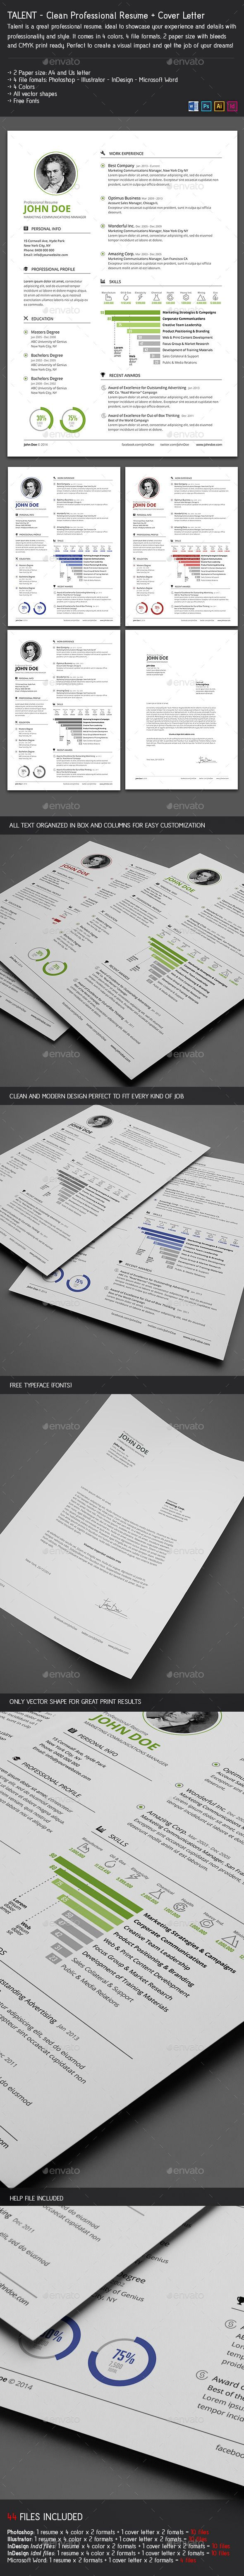 The 25 Best Resume Cover Letter Template Ideas On Pinterest